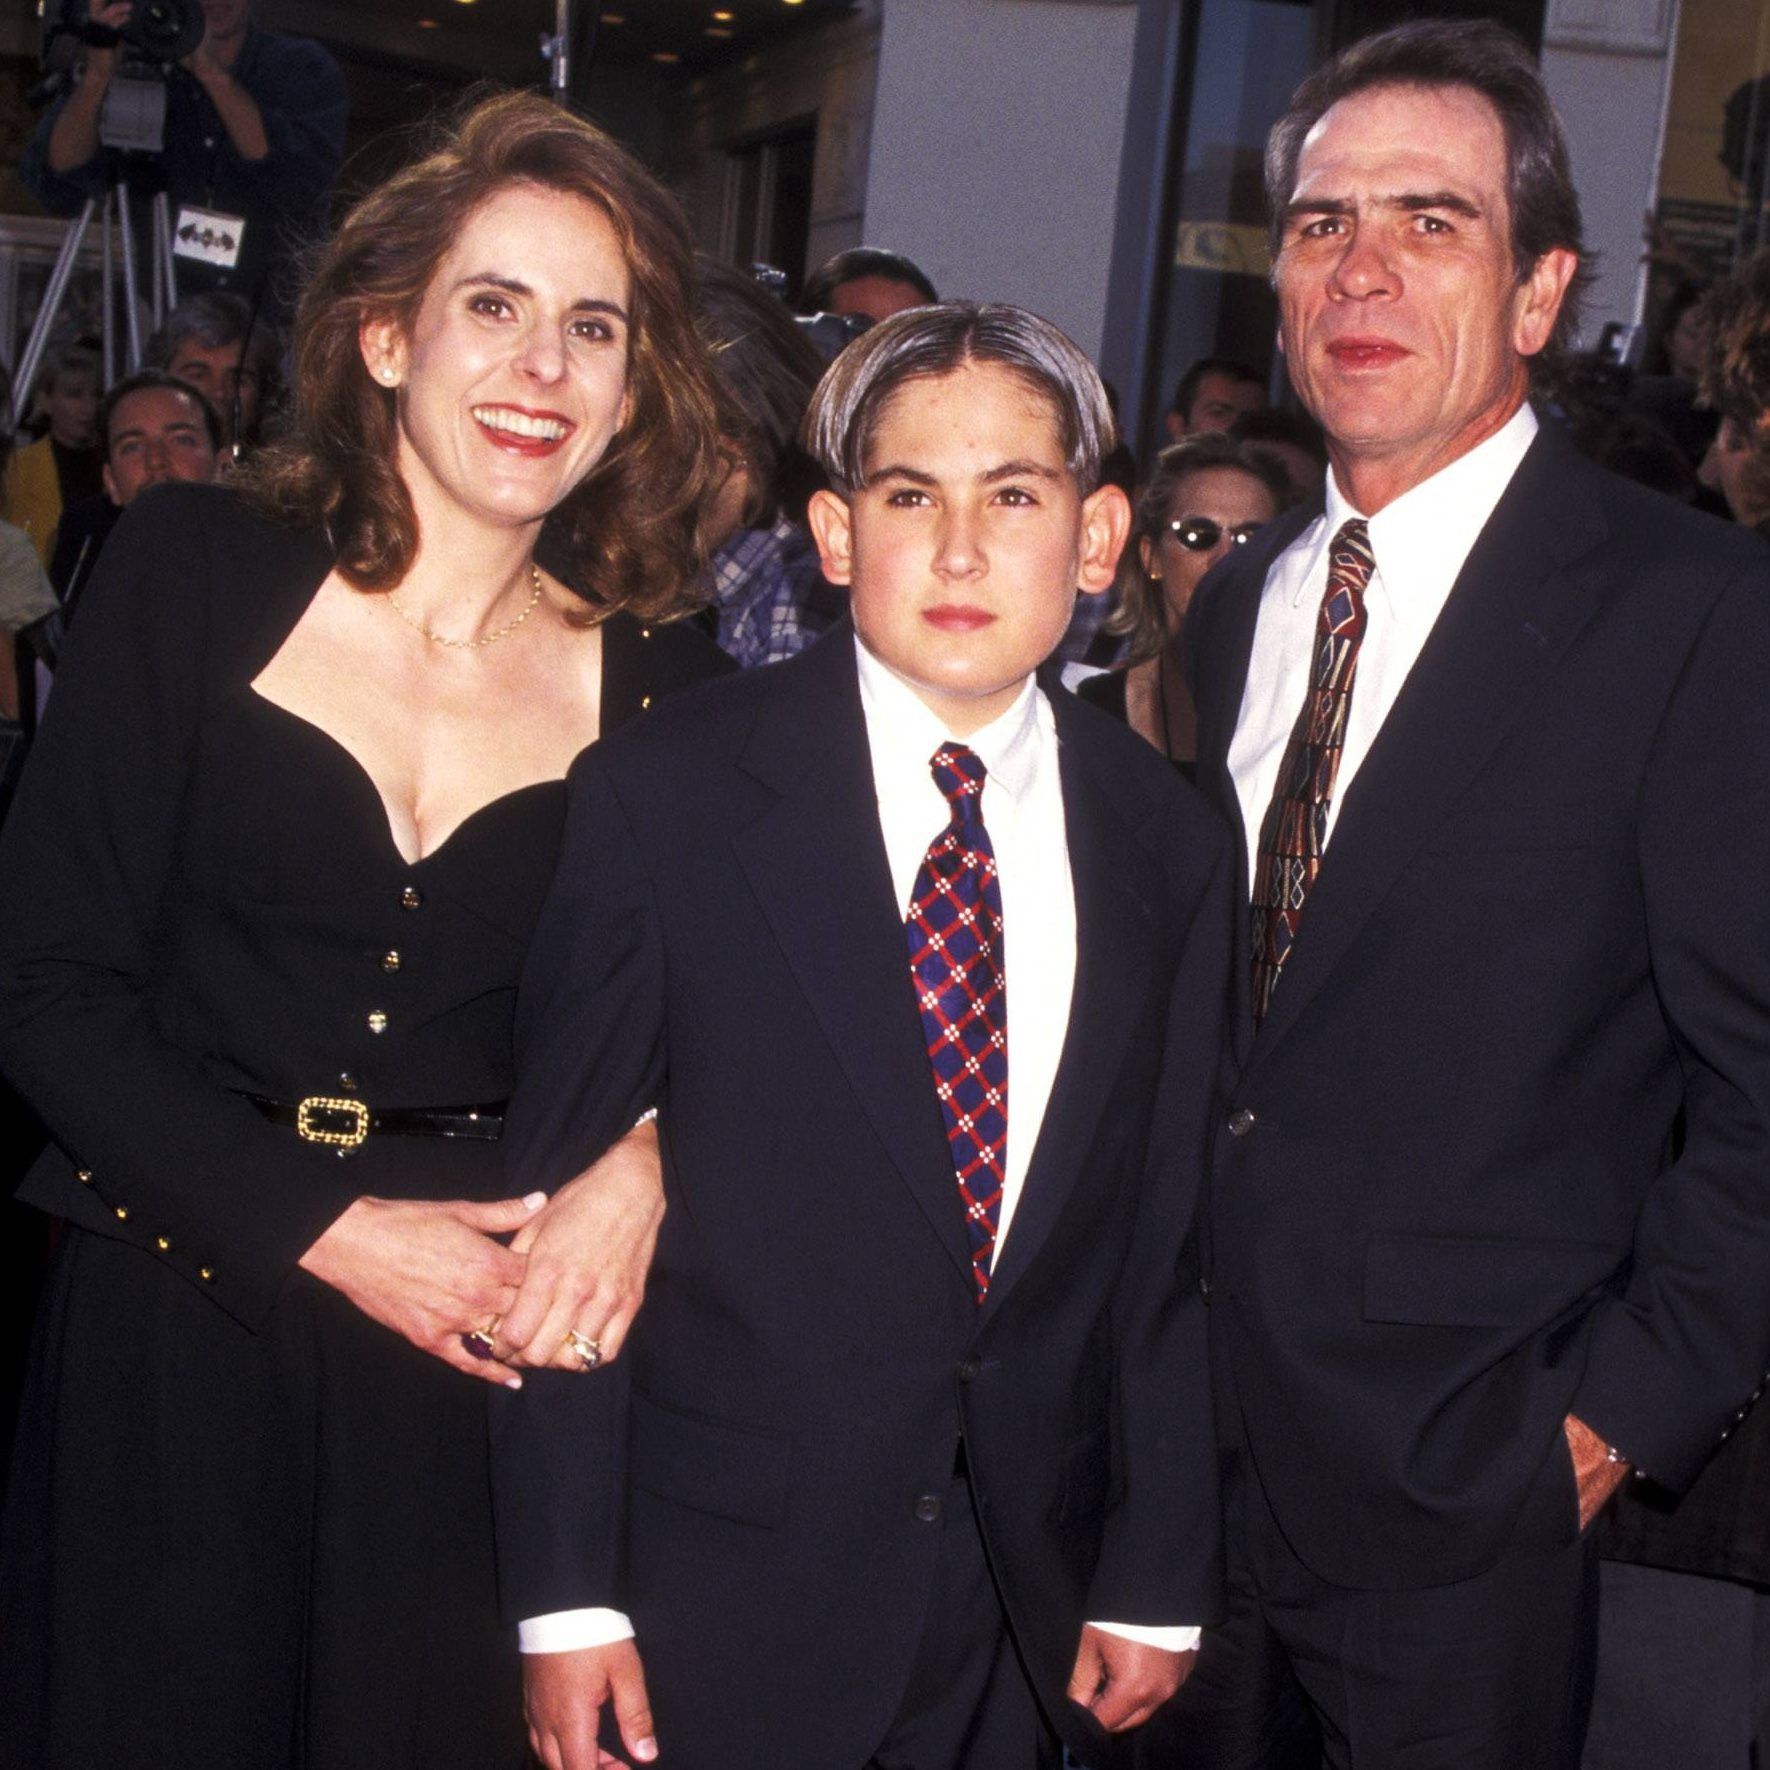 tommy lee jones si kimberlea si fiul lor gettyimages 105861364 scaled e1602233787549 20 Things You Never Knew About Tommy Lee Jones